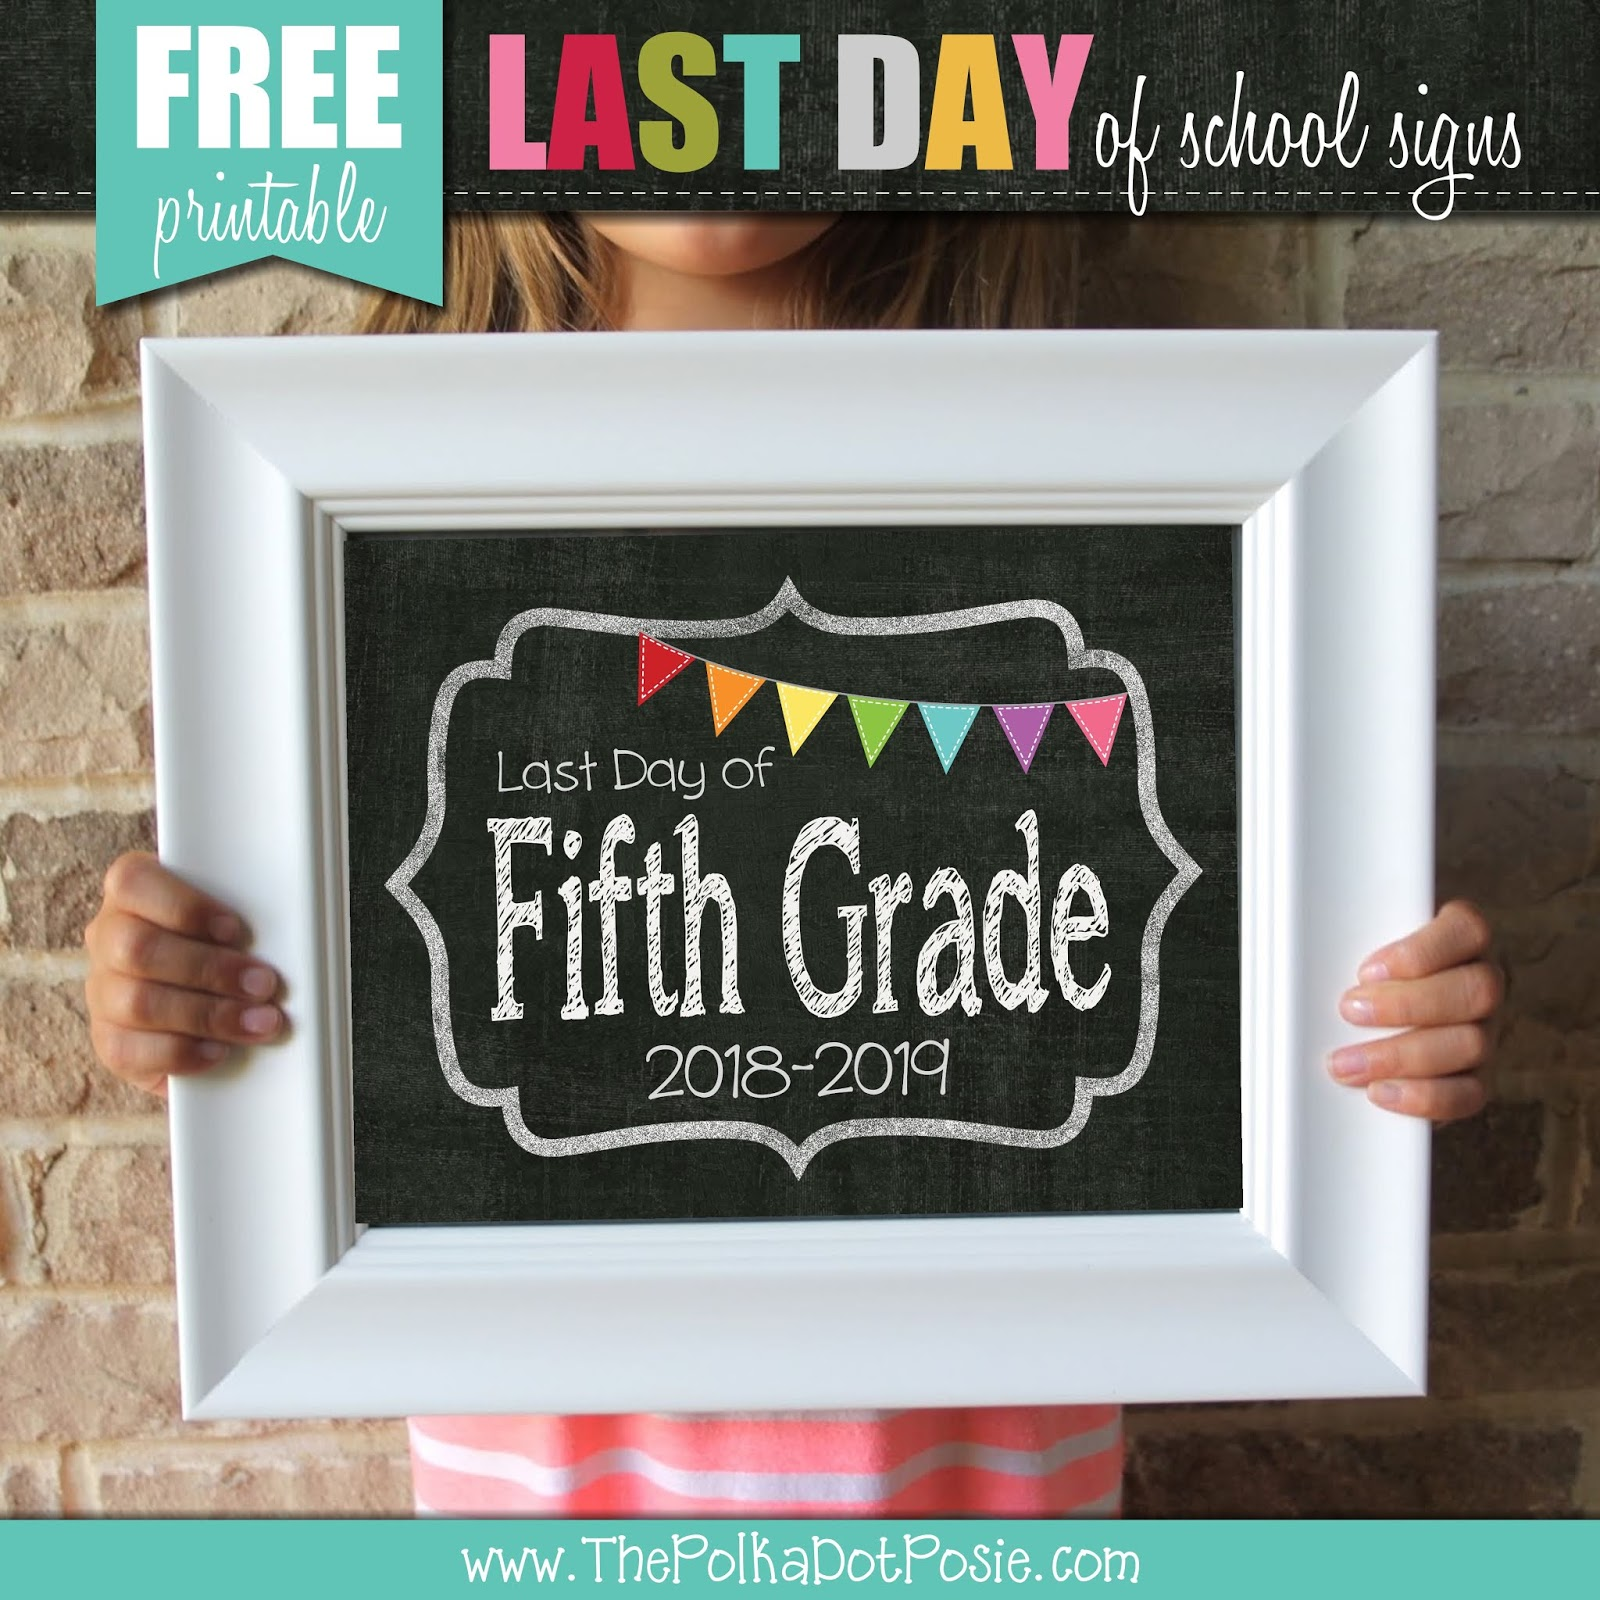 image relating to Last Day of School Signs Printable titled The Polka Dot Posie: Cost-free Printable Remaining Working day of College or university Signs or symptoms!